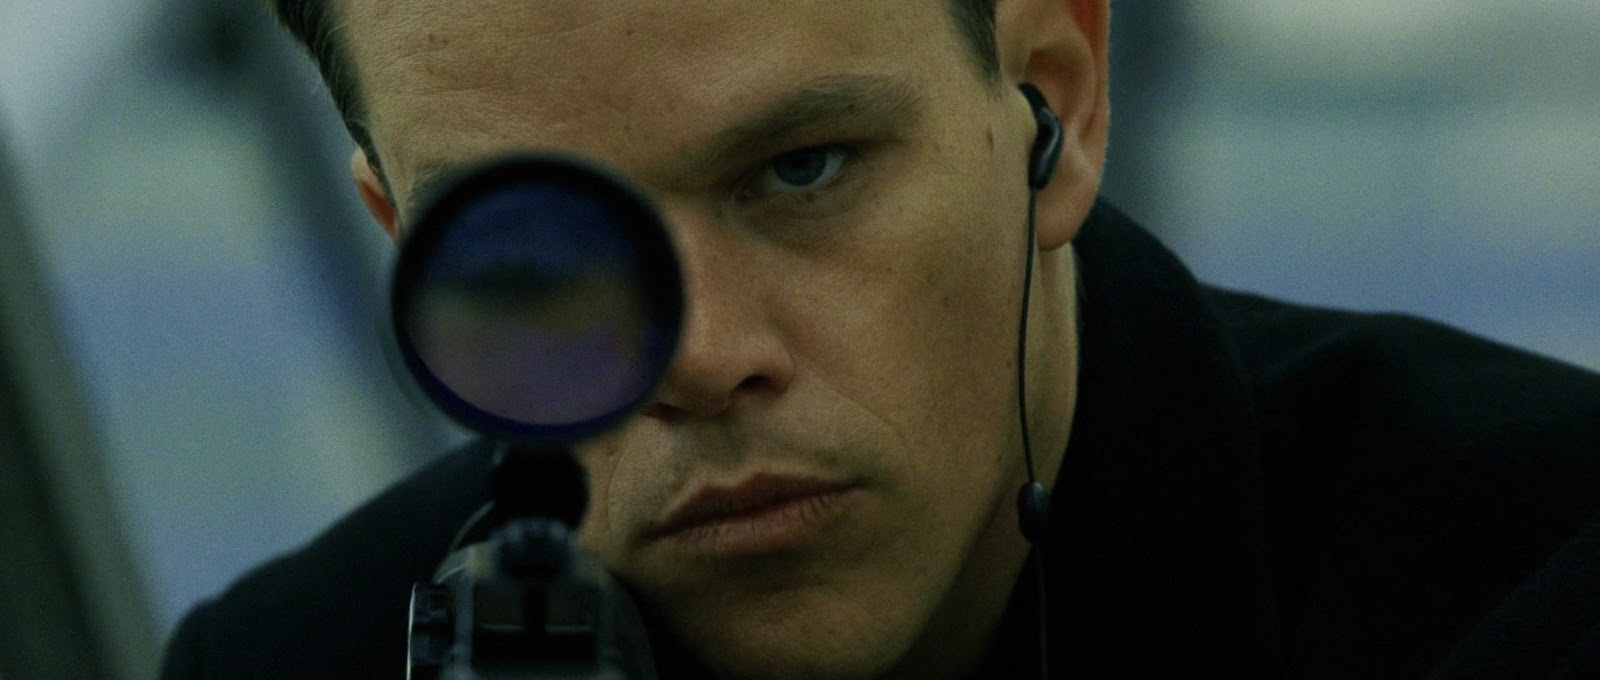 the bourne identity theme song free download